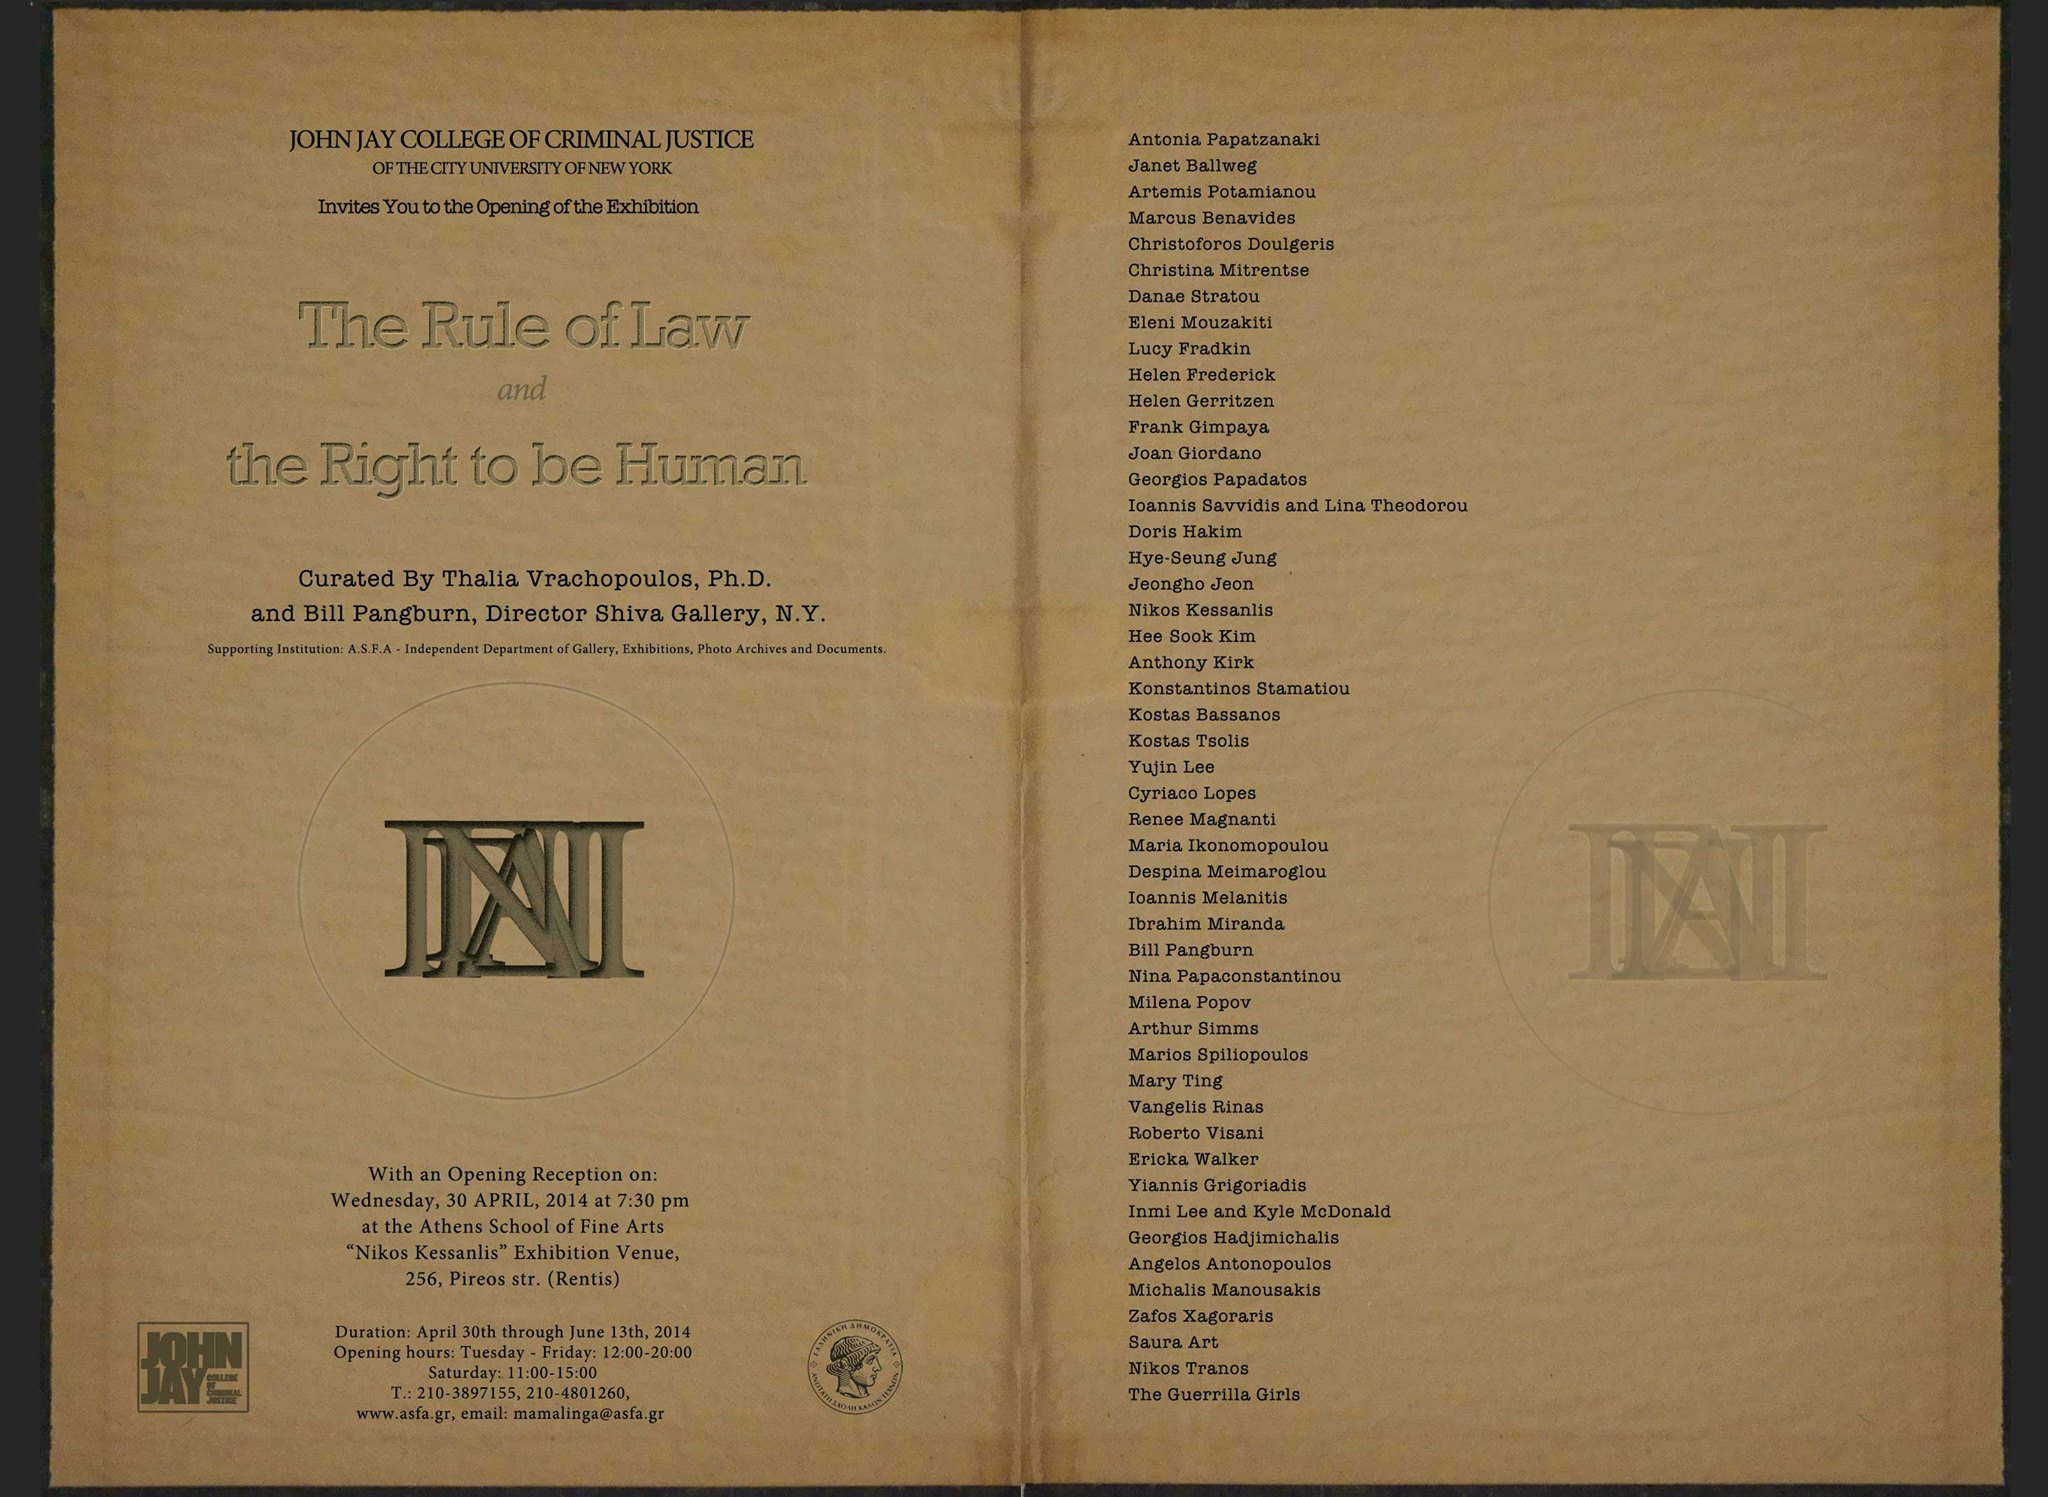 The Rule of Law and the Right to Be Human.jpg